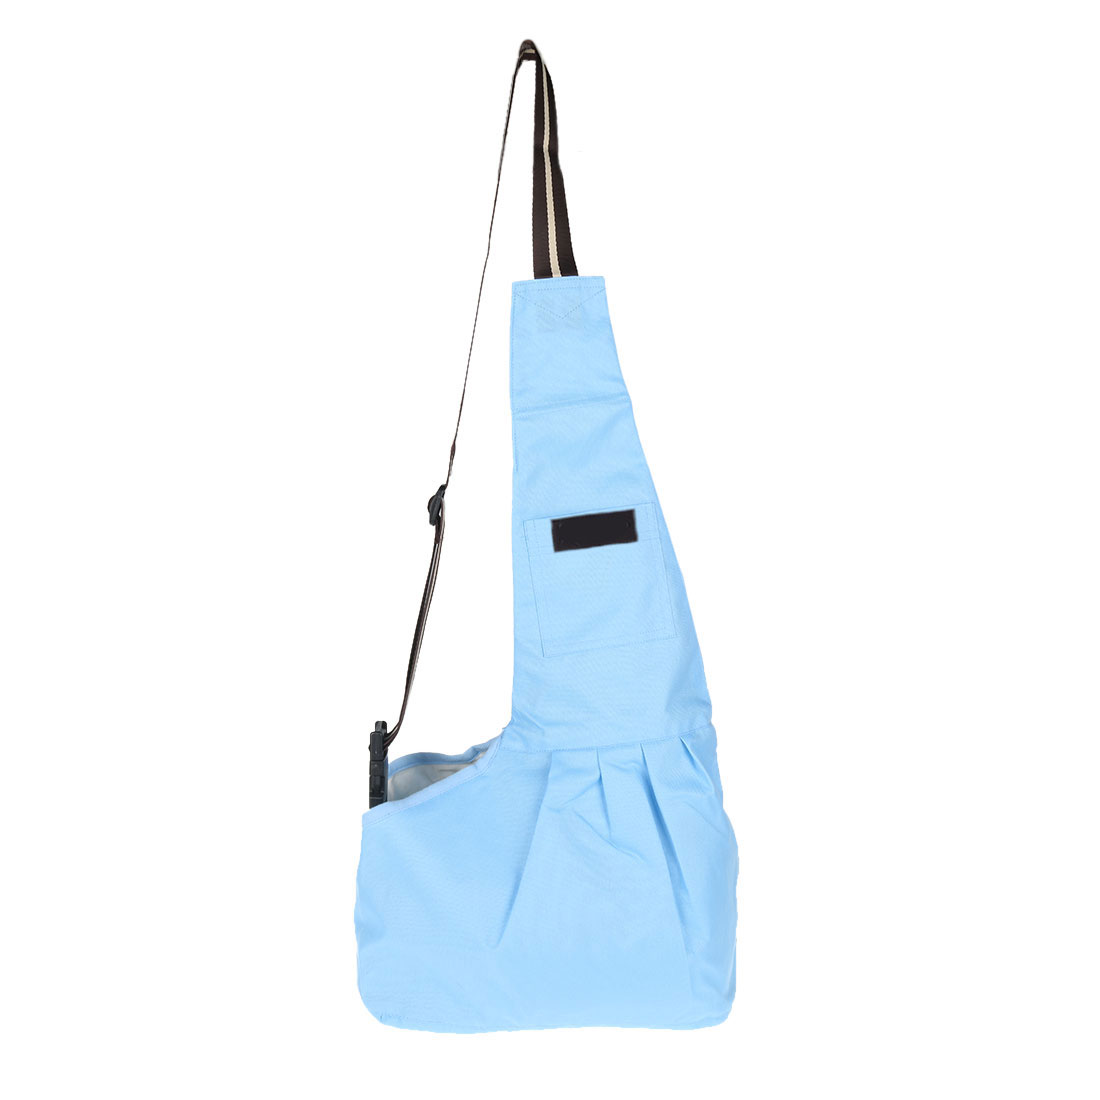 Small Dog Cat Carrier Bag Outdoor Tote Soft Shoulder Backpack Blue L